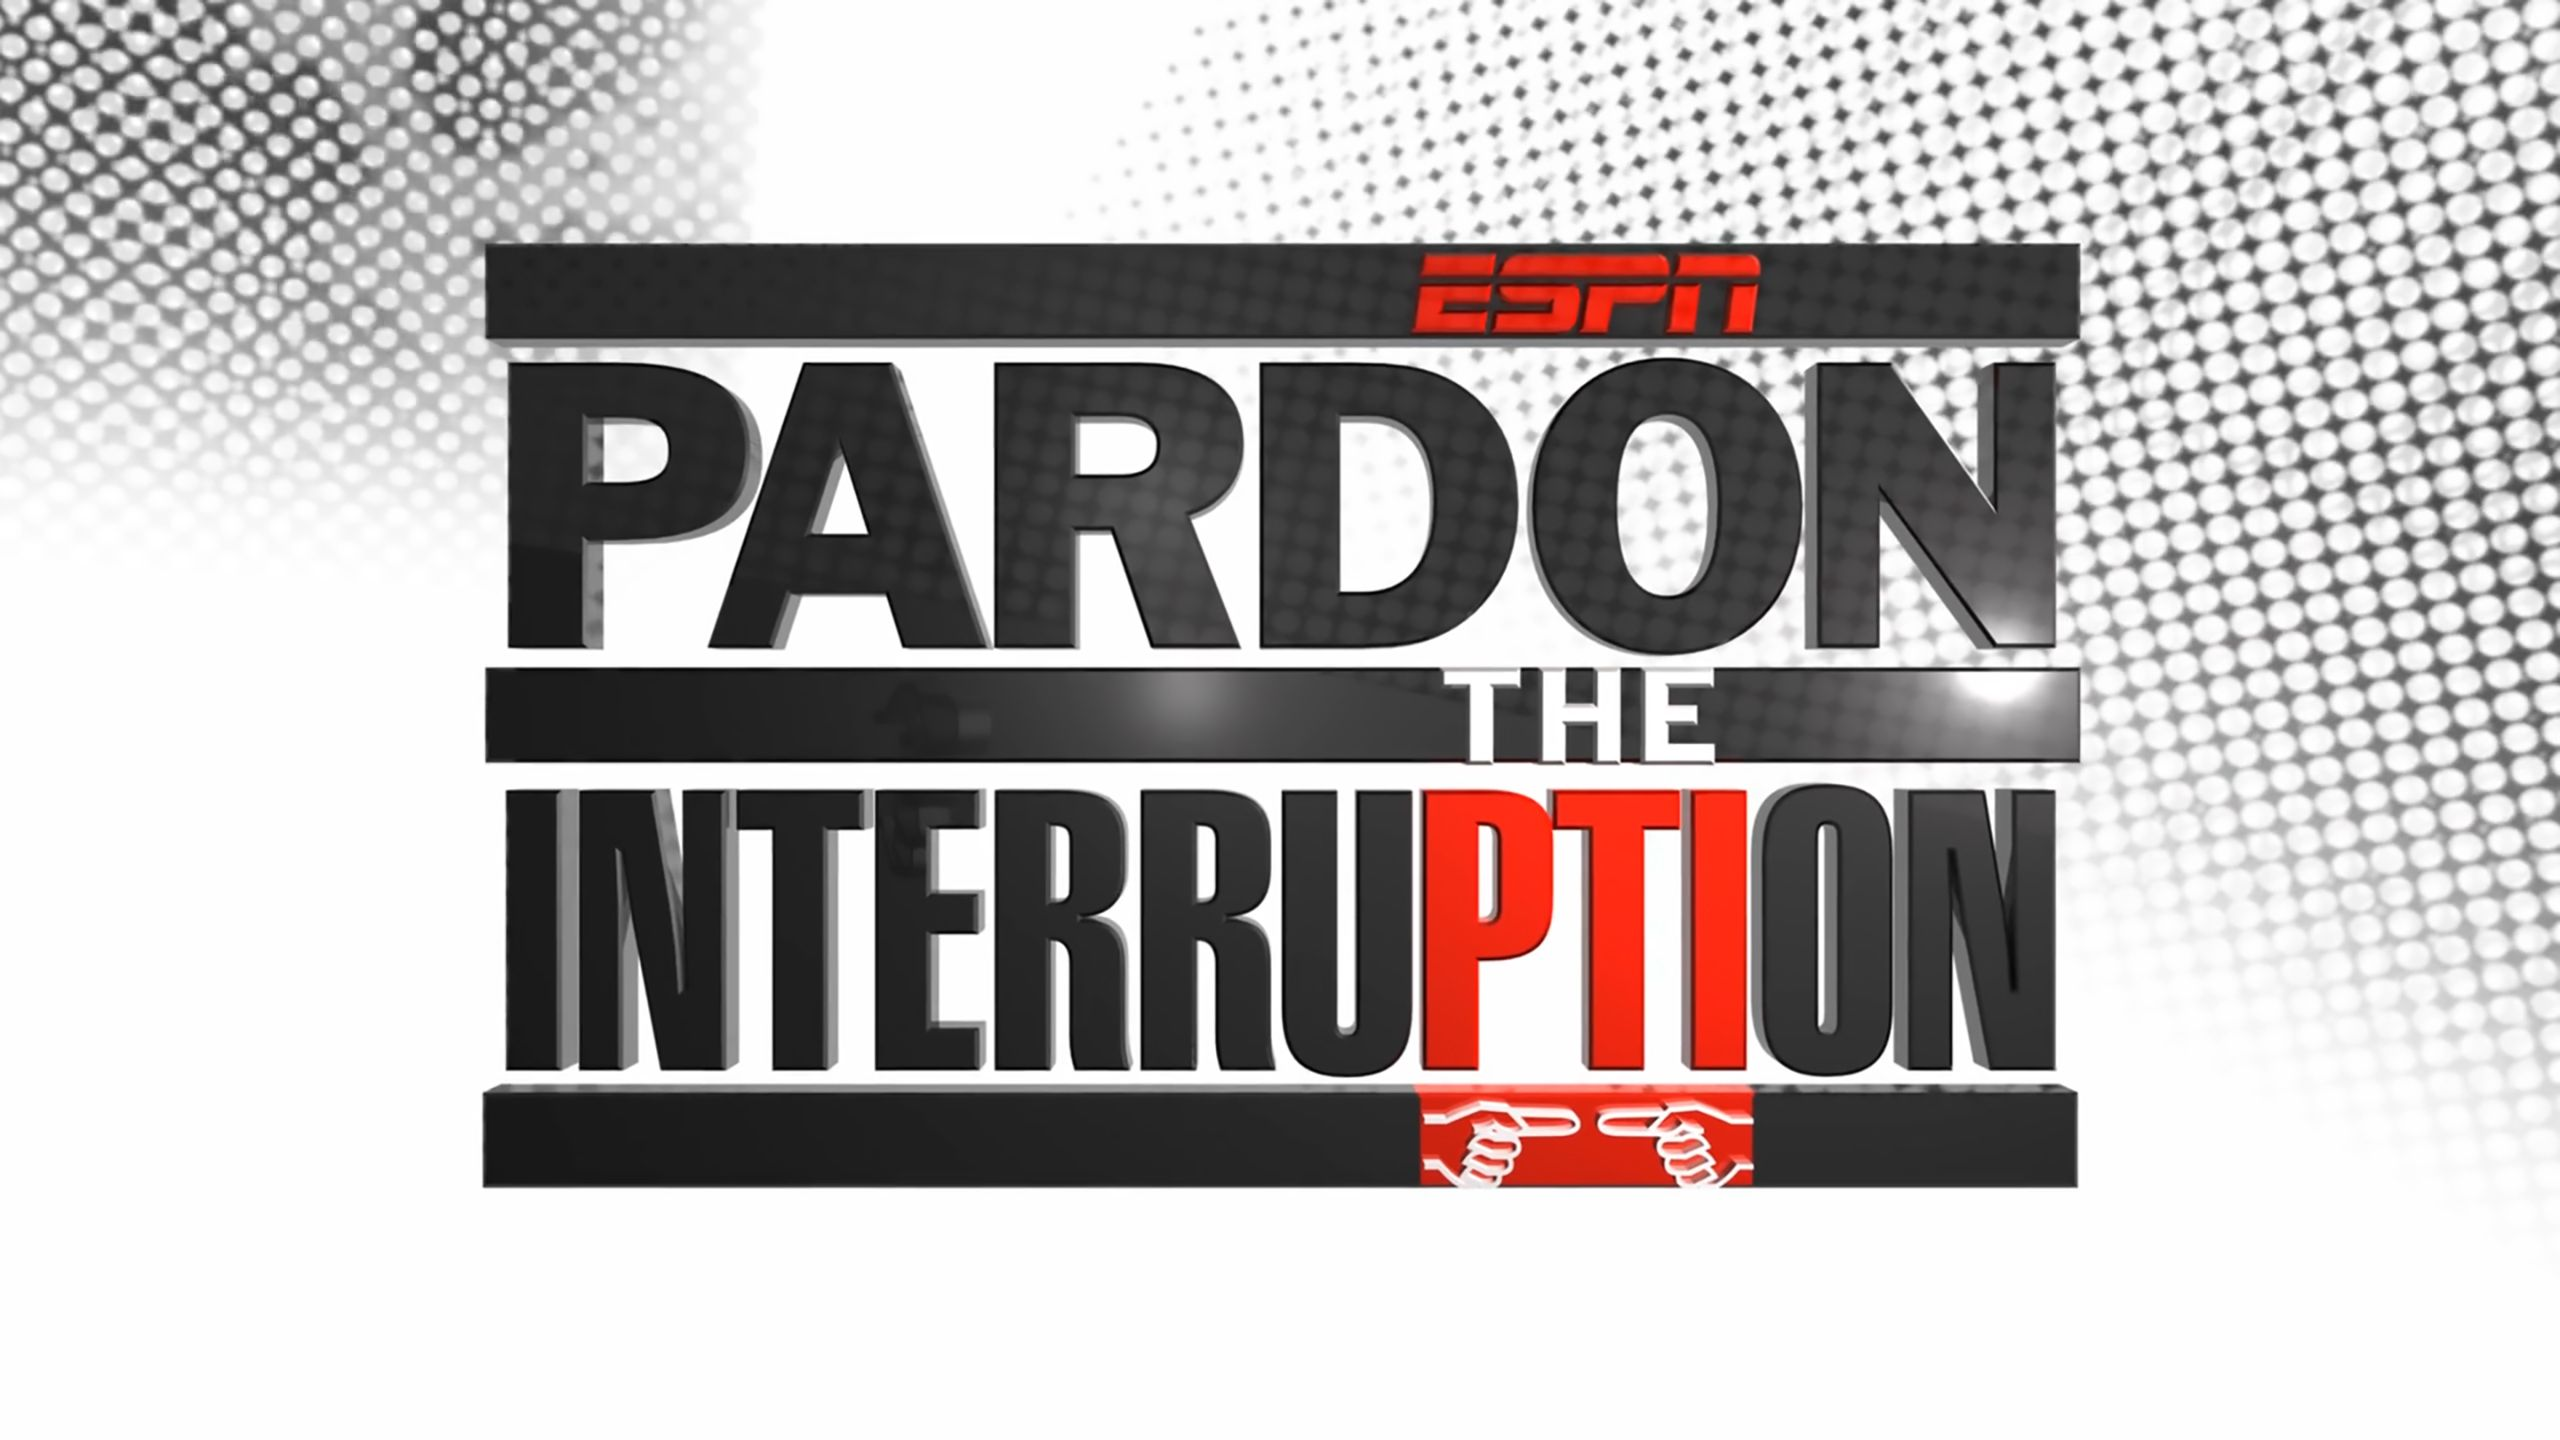 Mon, 6/18 - Pardon The Interruption